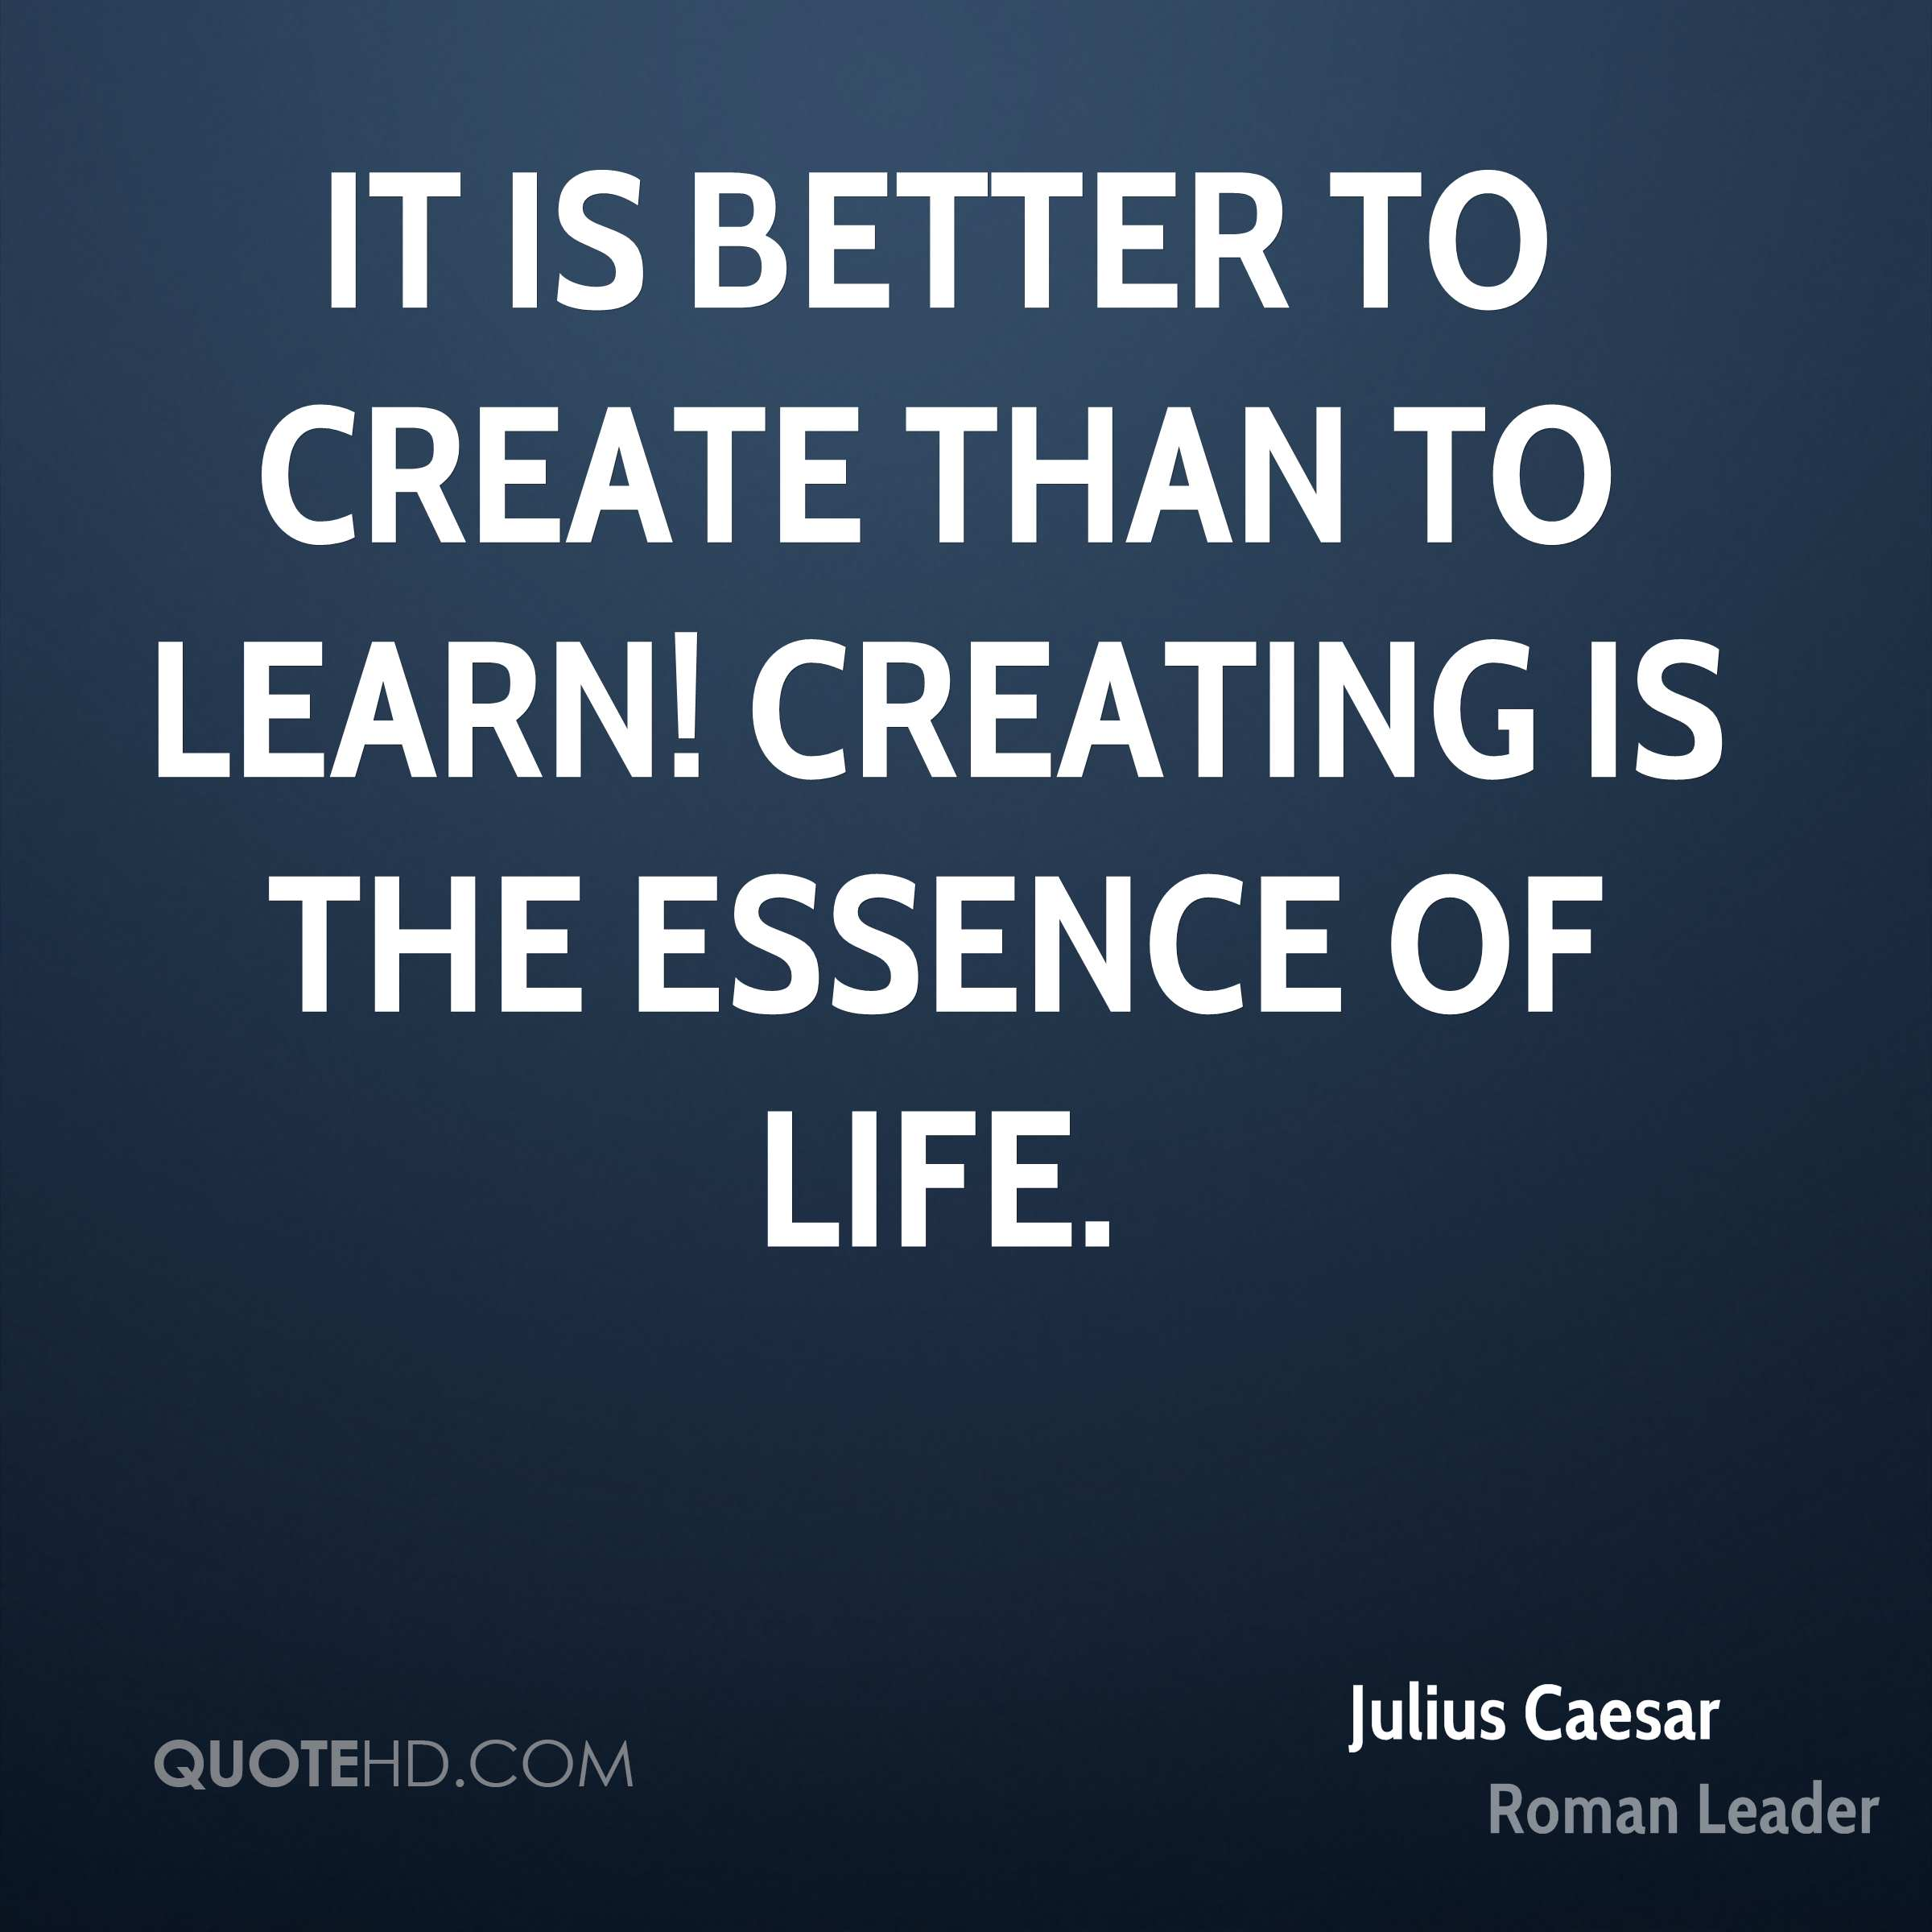 julius ceasar better leader Leadership lessons, short biography and quotes from julius caesar, the roman military leader and statesman who changed the course of.